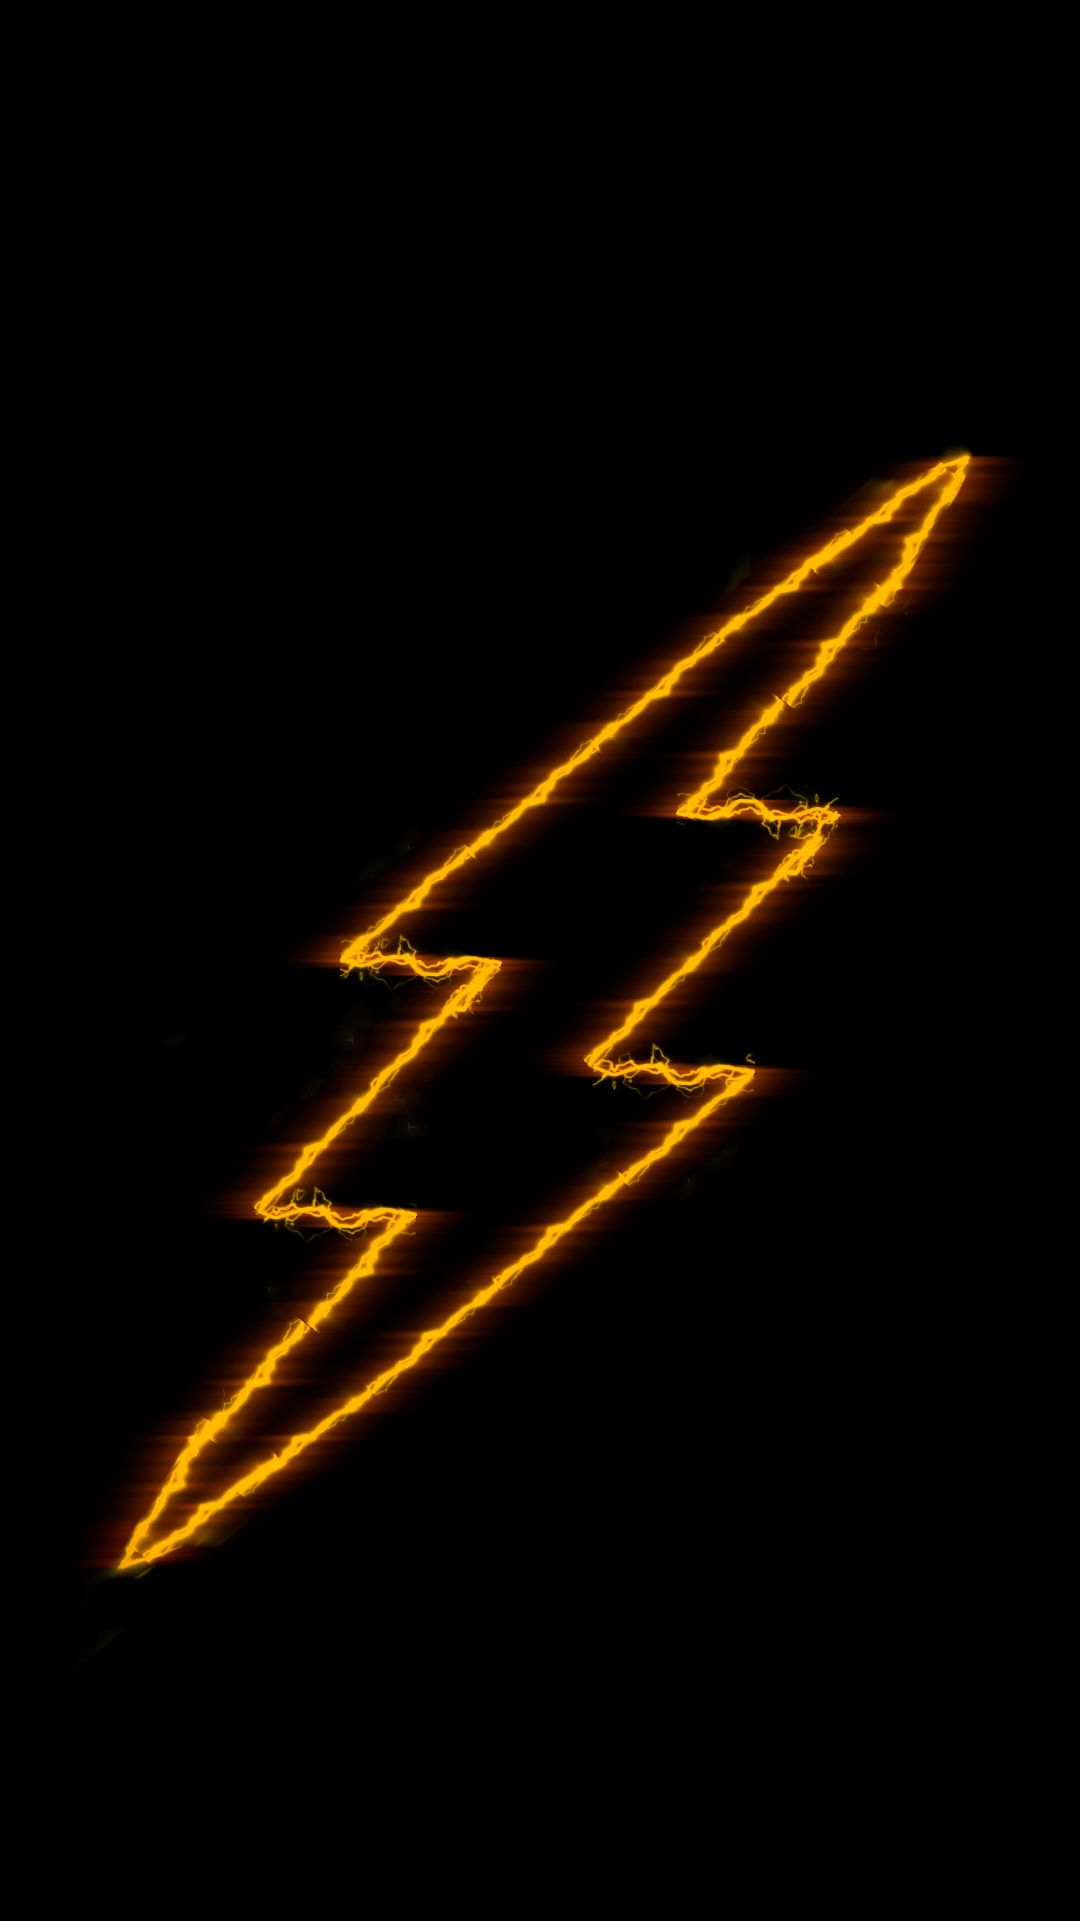 the flash logo wallpaper free custom made iphone 6/6s wallpaper. use